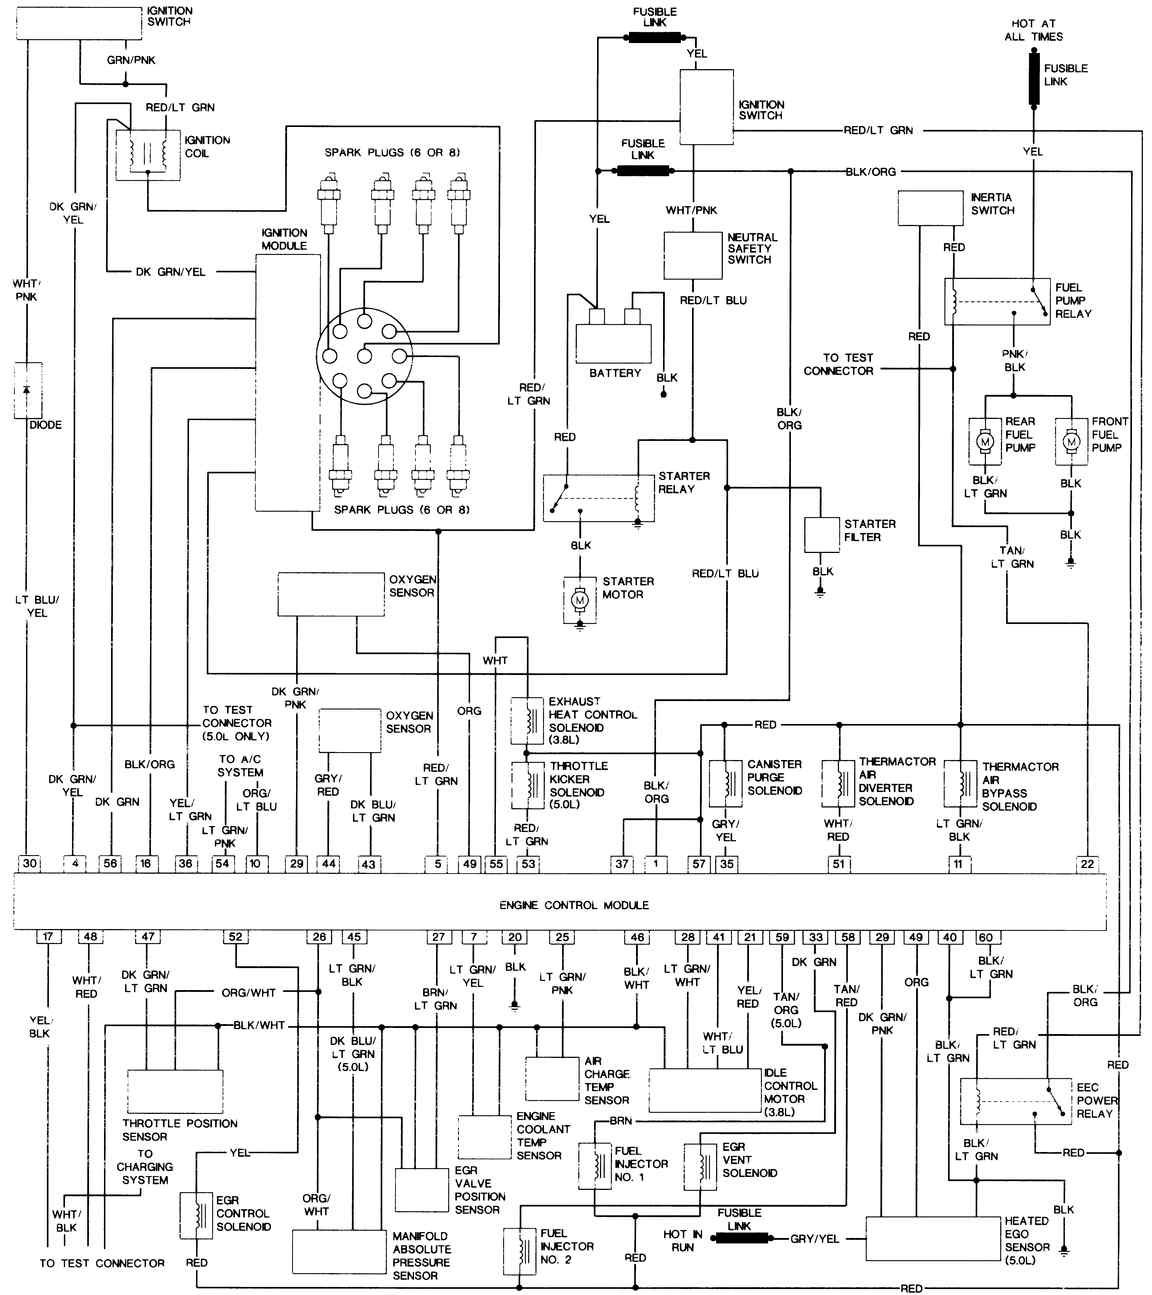 1986 ford mustang wiring diagram wiring diagram online1986 ford ltd wiring diagram owner manual \u0026 wiring diagram 1986 ford mustang starter solenoid wiring